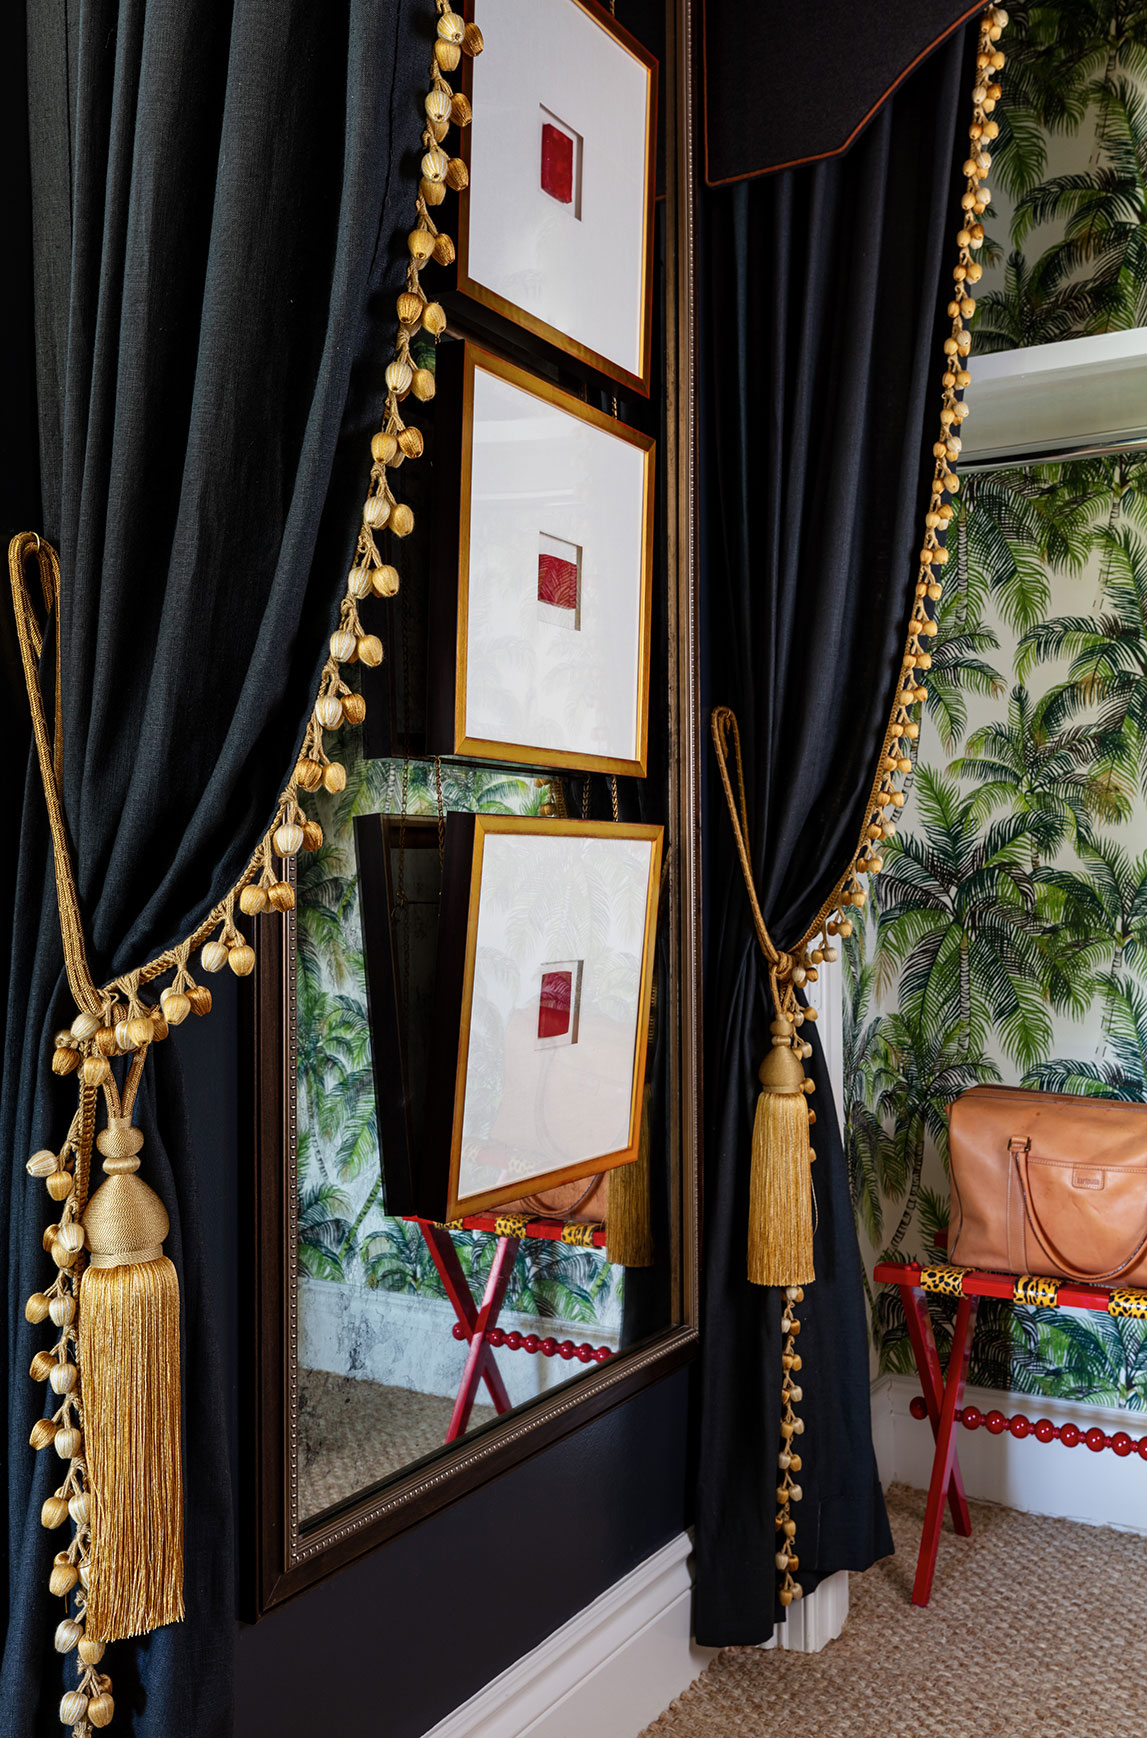 Tassels And Trim Are All The Rage, And They're Having A Moment At Kips Bay Palm Beach